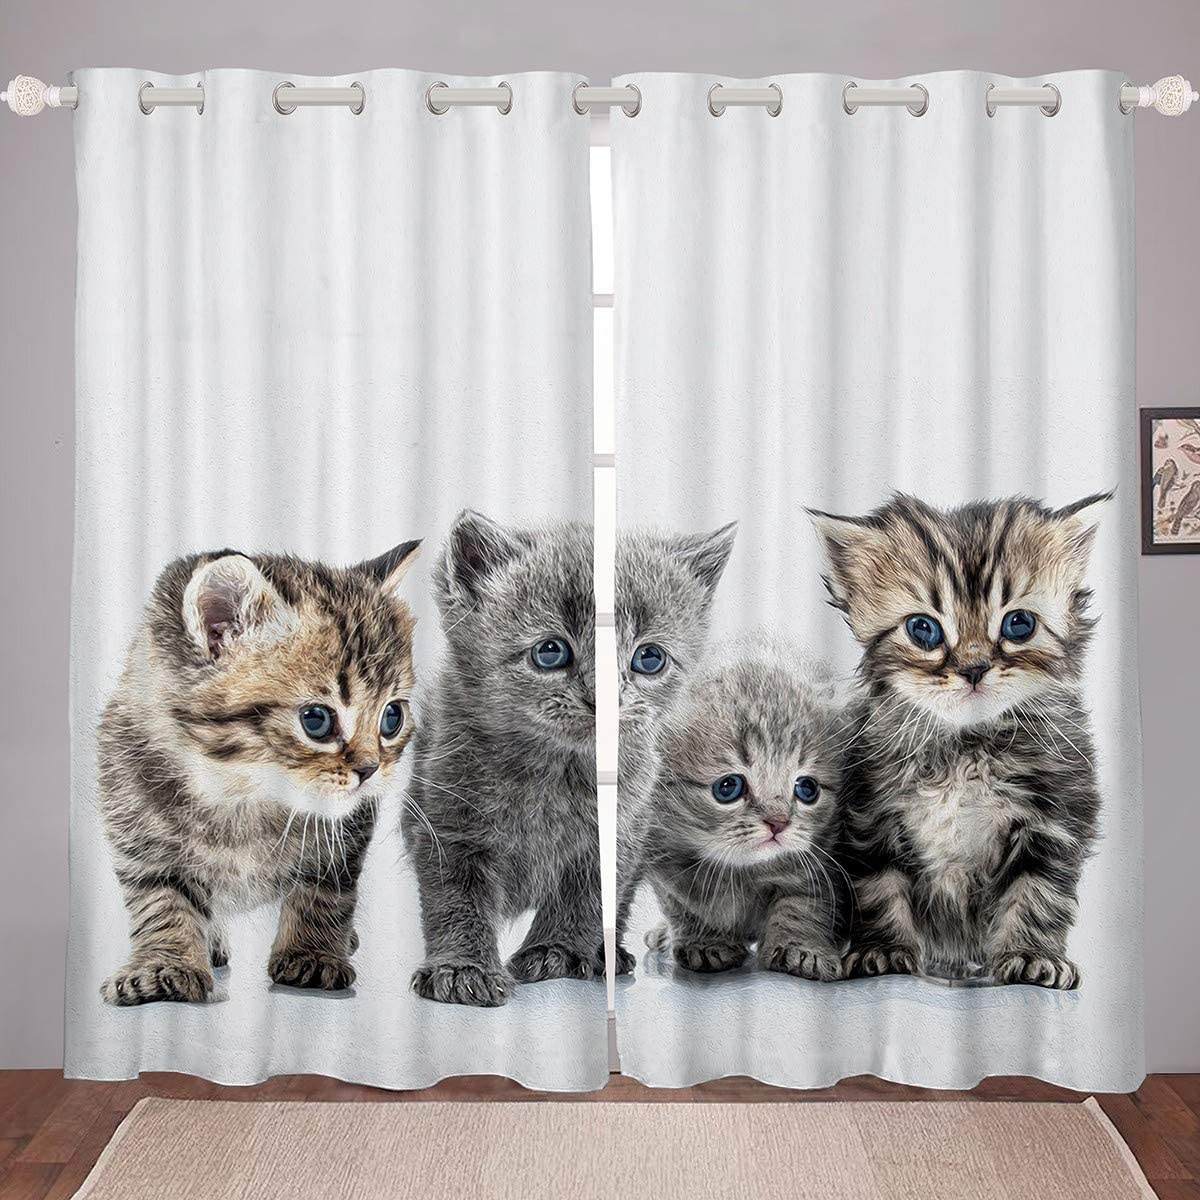 Little Cat Window security Drapes Lovely Pet Purchase Cats L Treatments